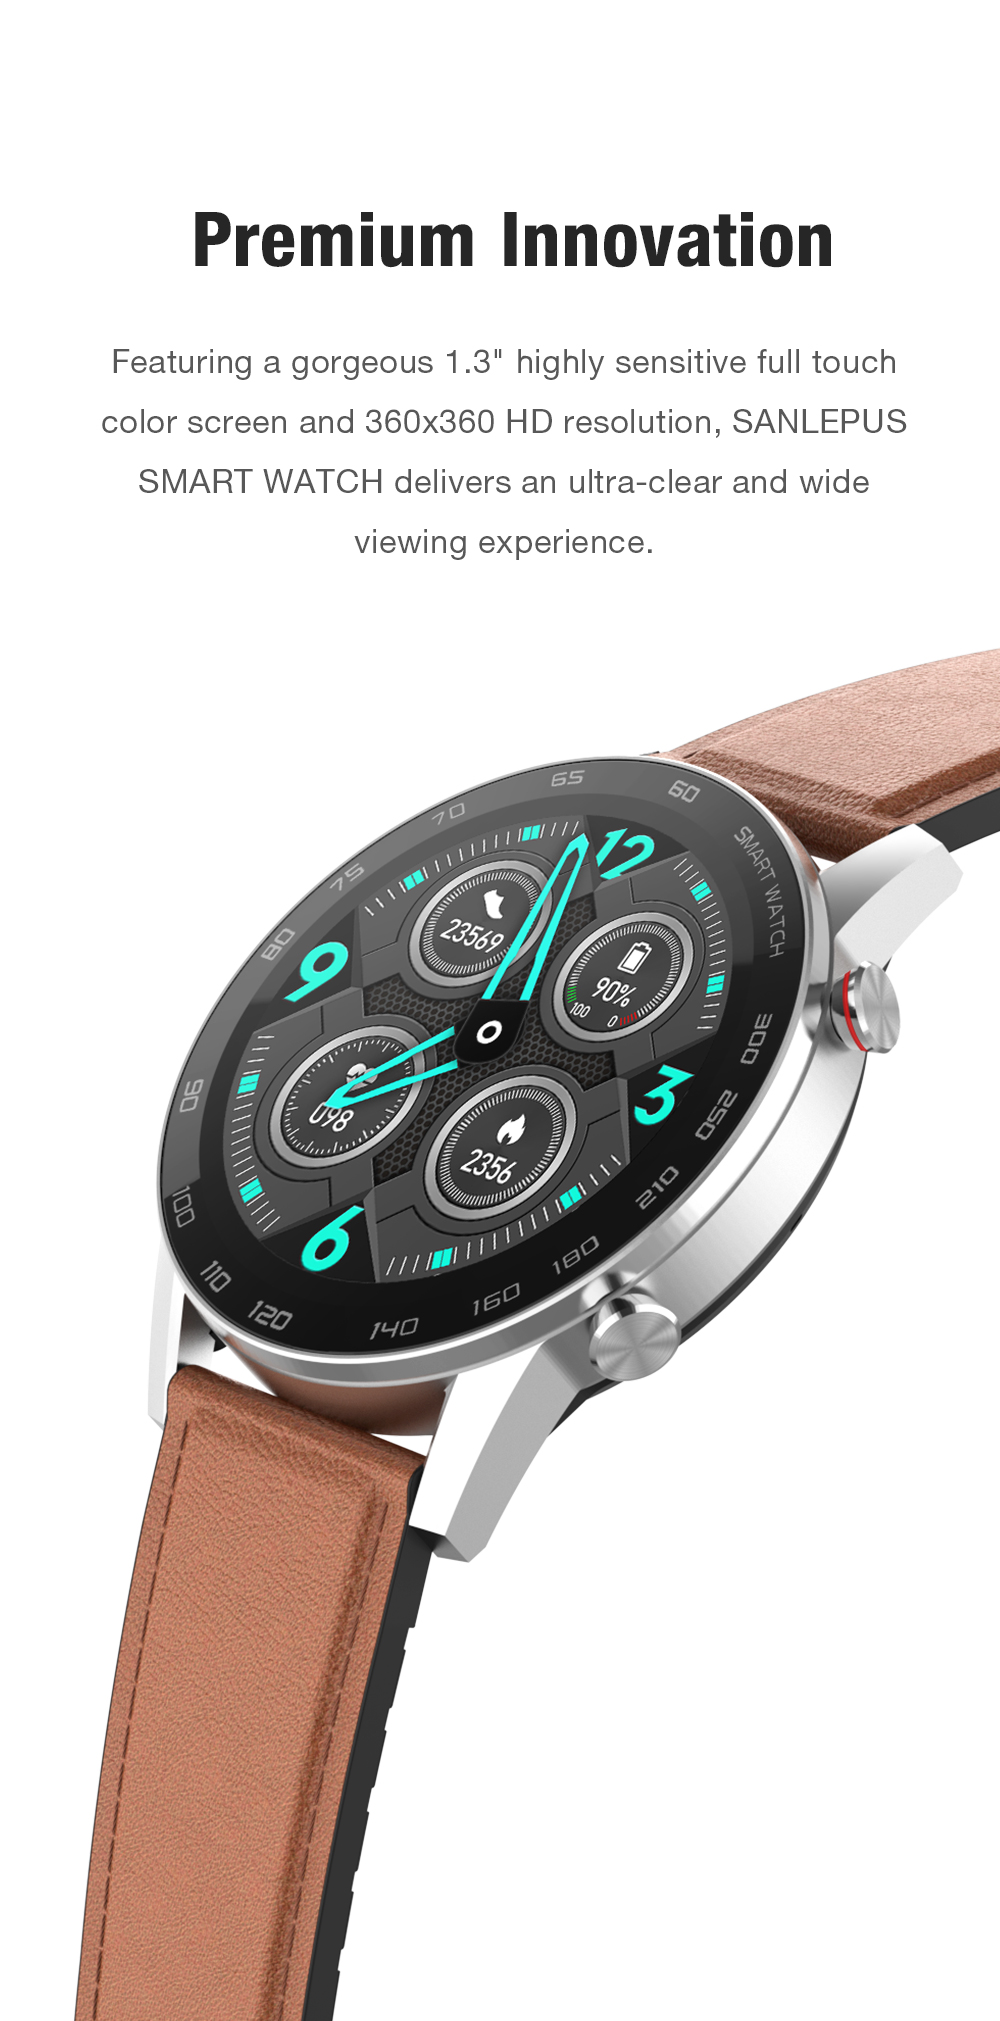 Hd981f5cb4d8247518a591f0fc21b5b17w 2021 SANLEPUS ECG Smart Watch Dial Call Smartwatch Men Sport Fitness Bracelet Clock Watches For Android Apple Xiaomi